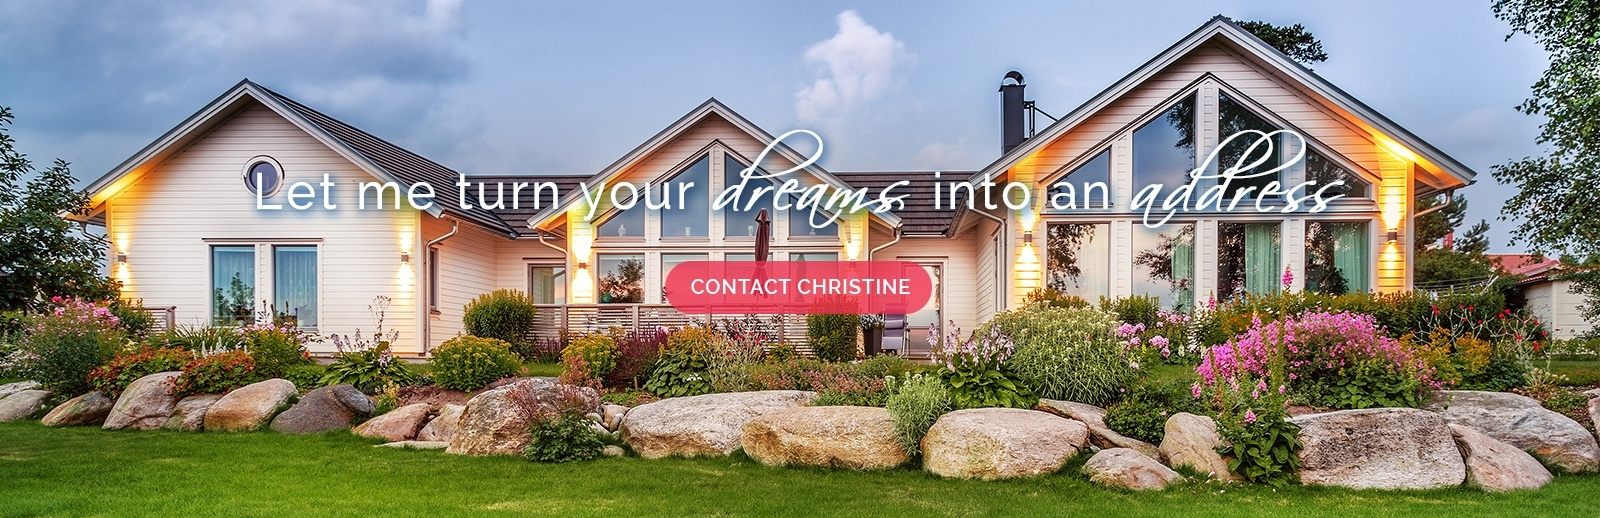 Homes For Sale In Fonthill Ontario